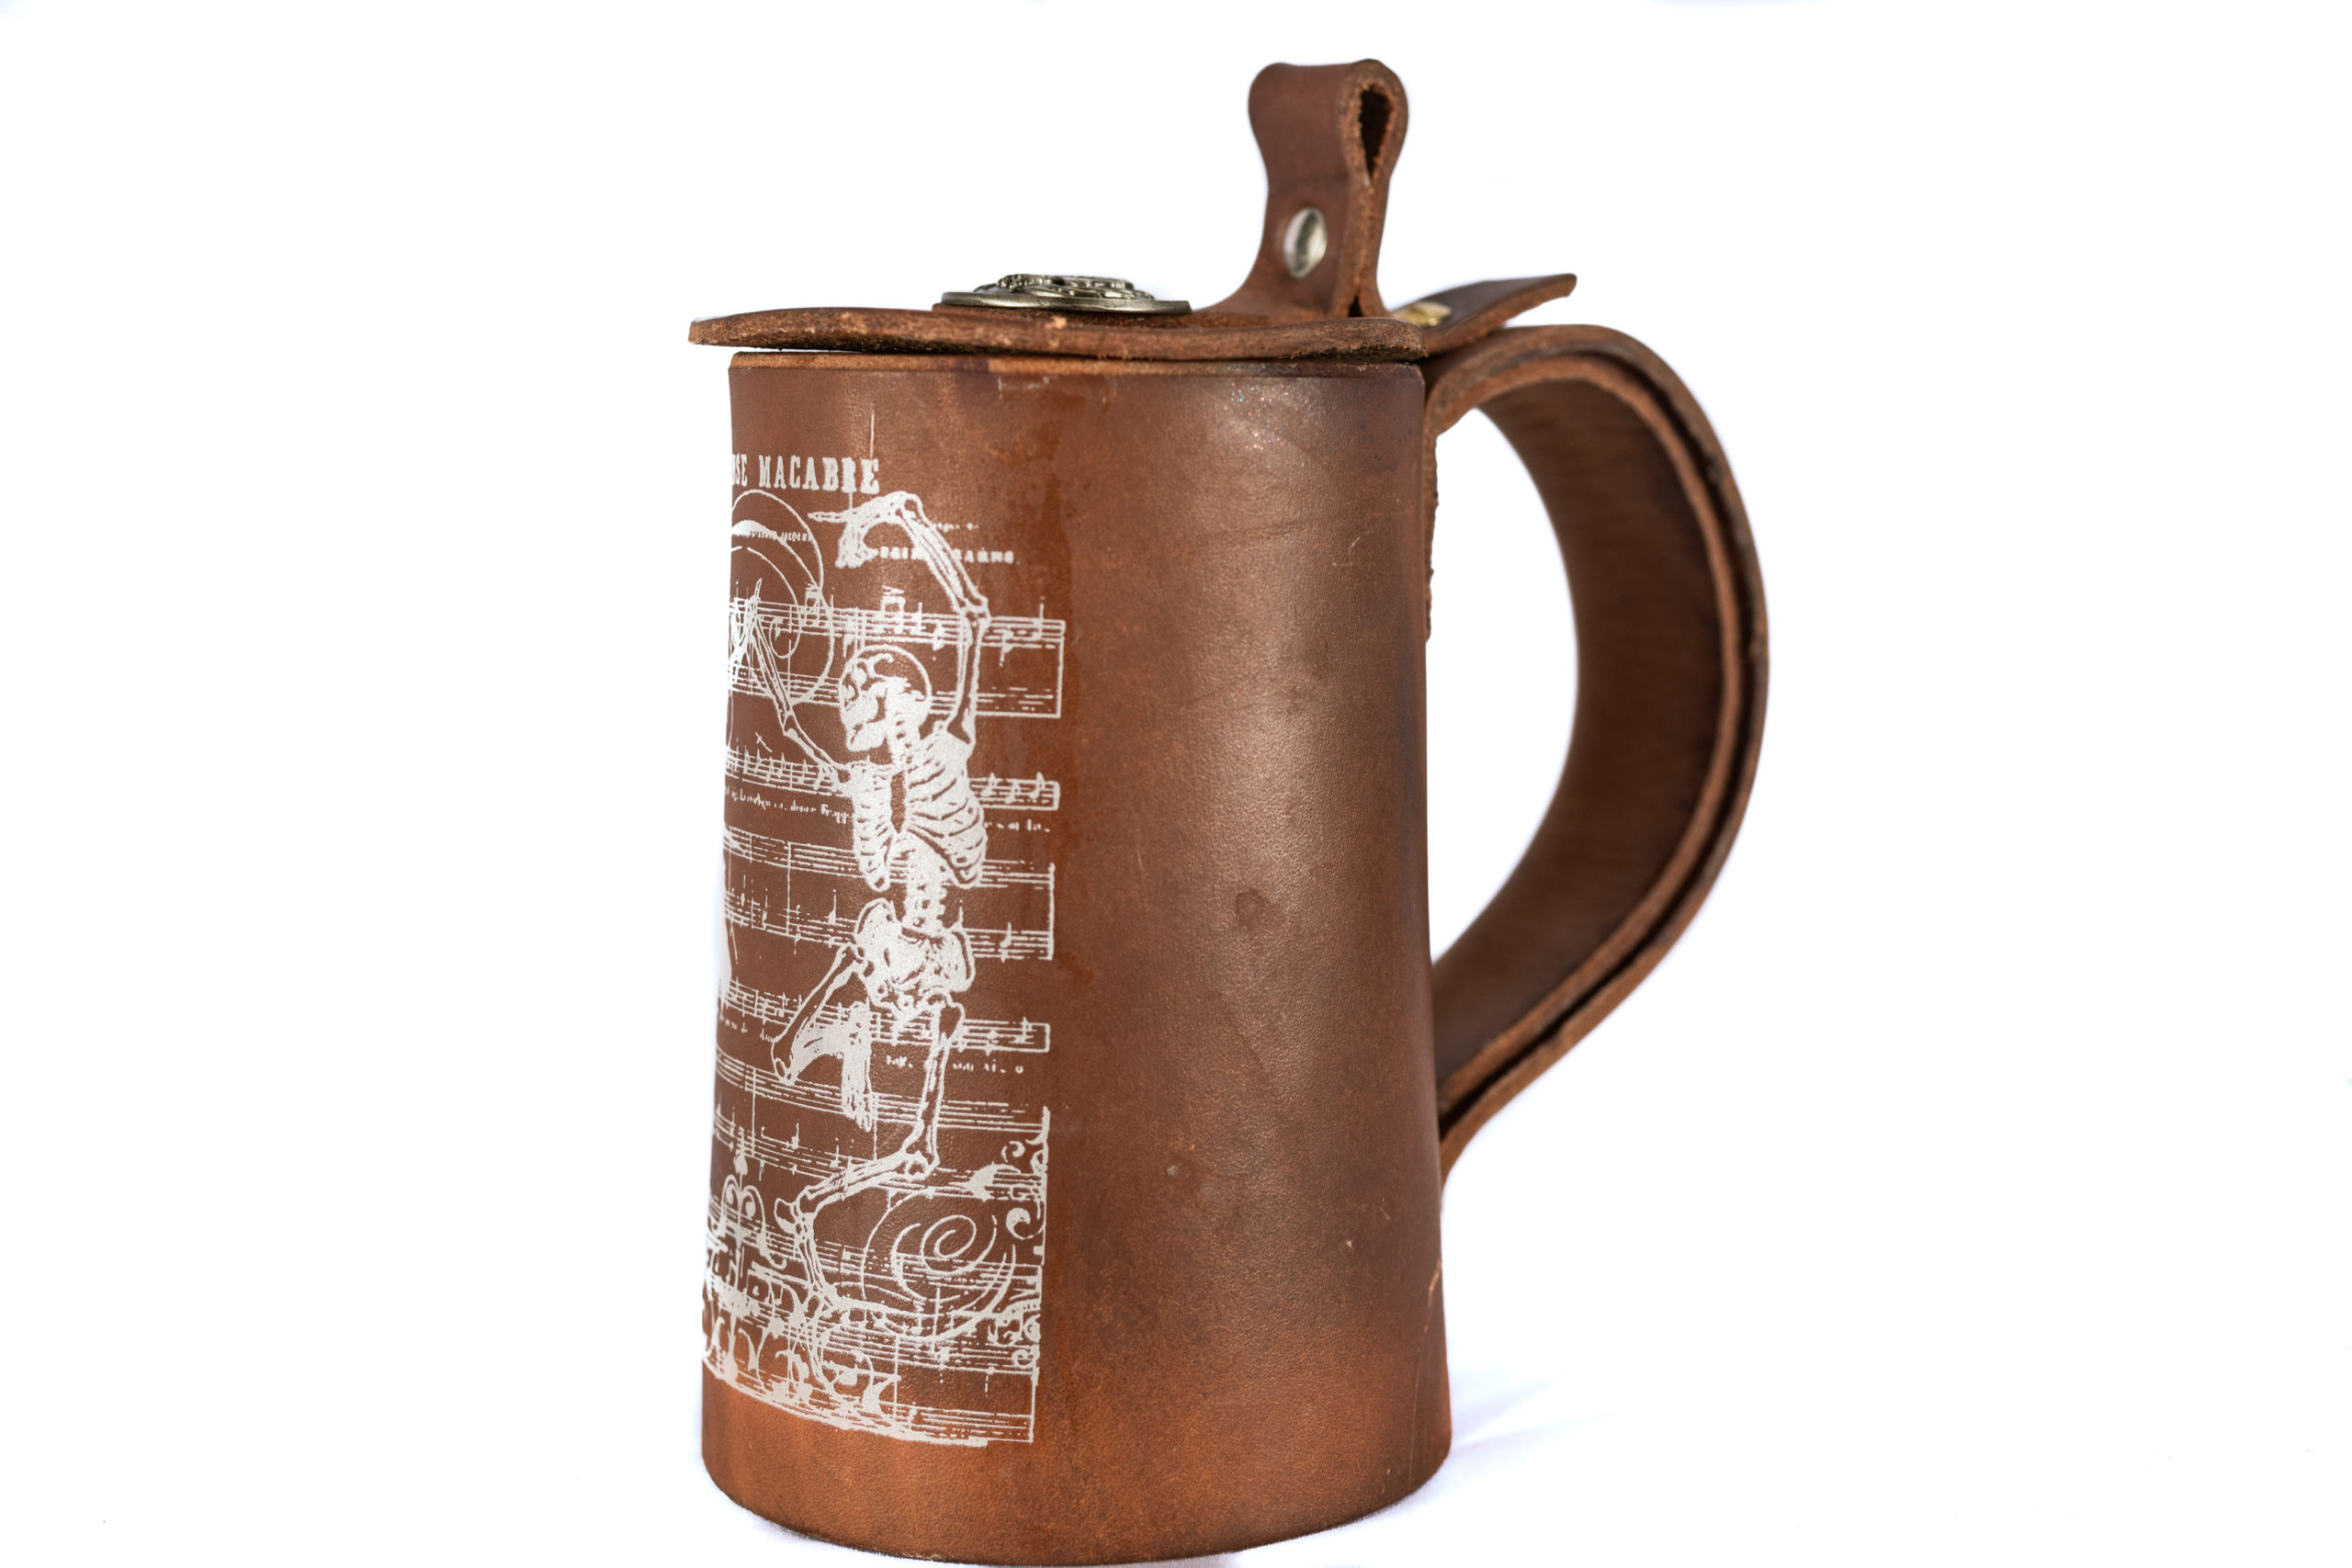 Leather Danse Macabre flagon mug with attached lid